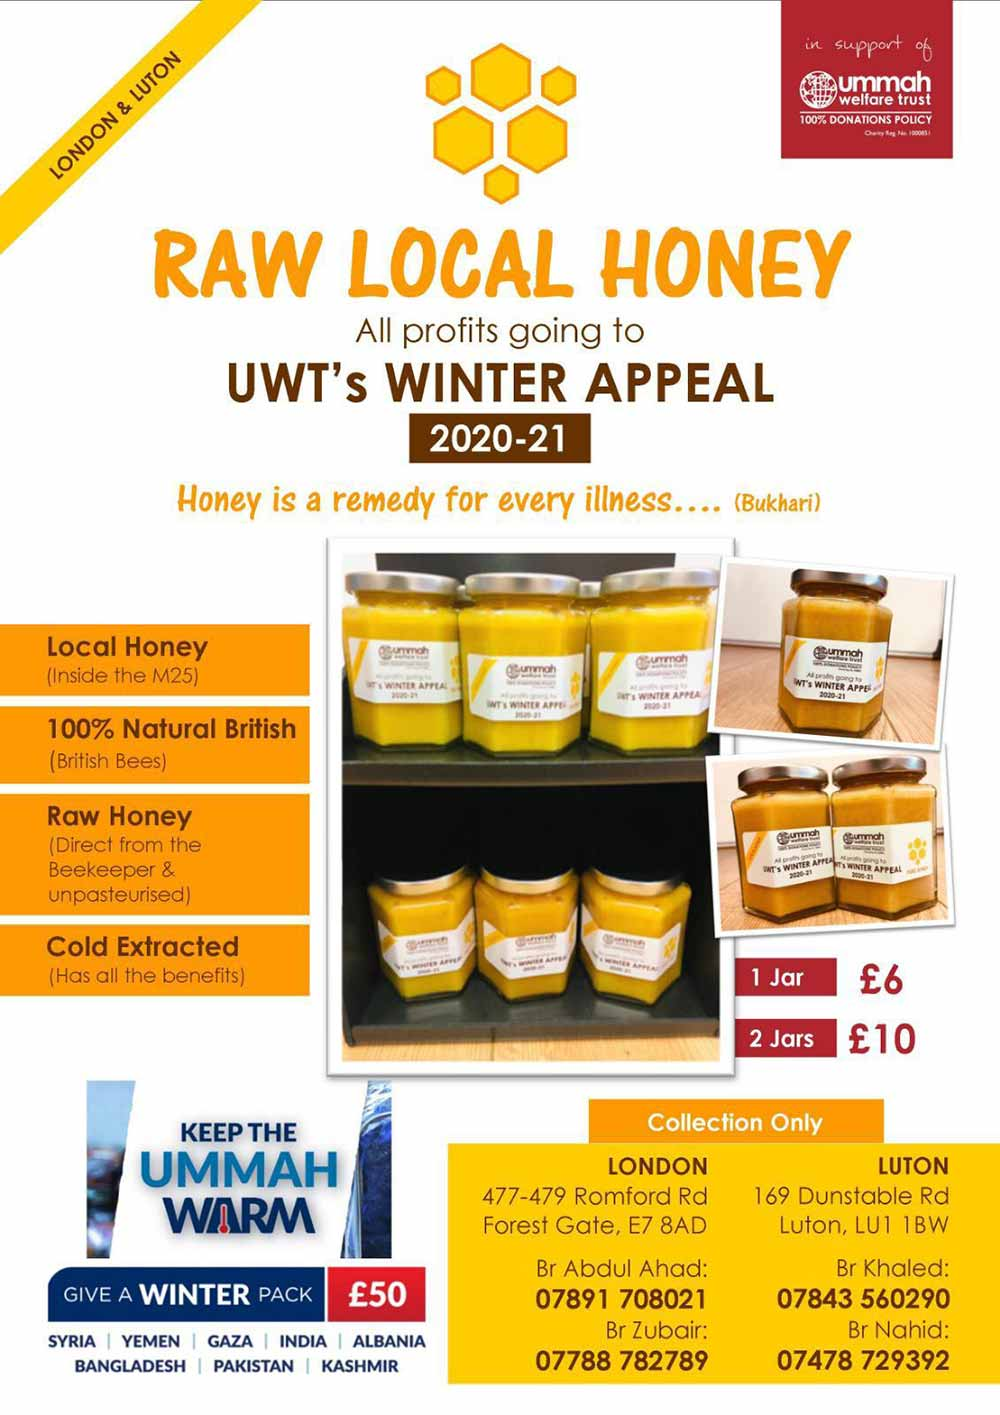 Honey sale for charity